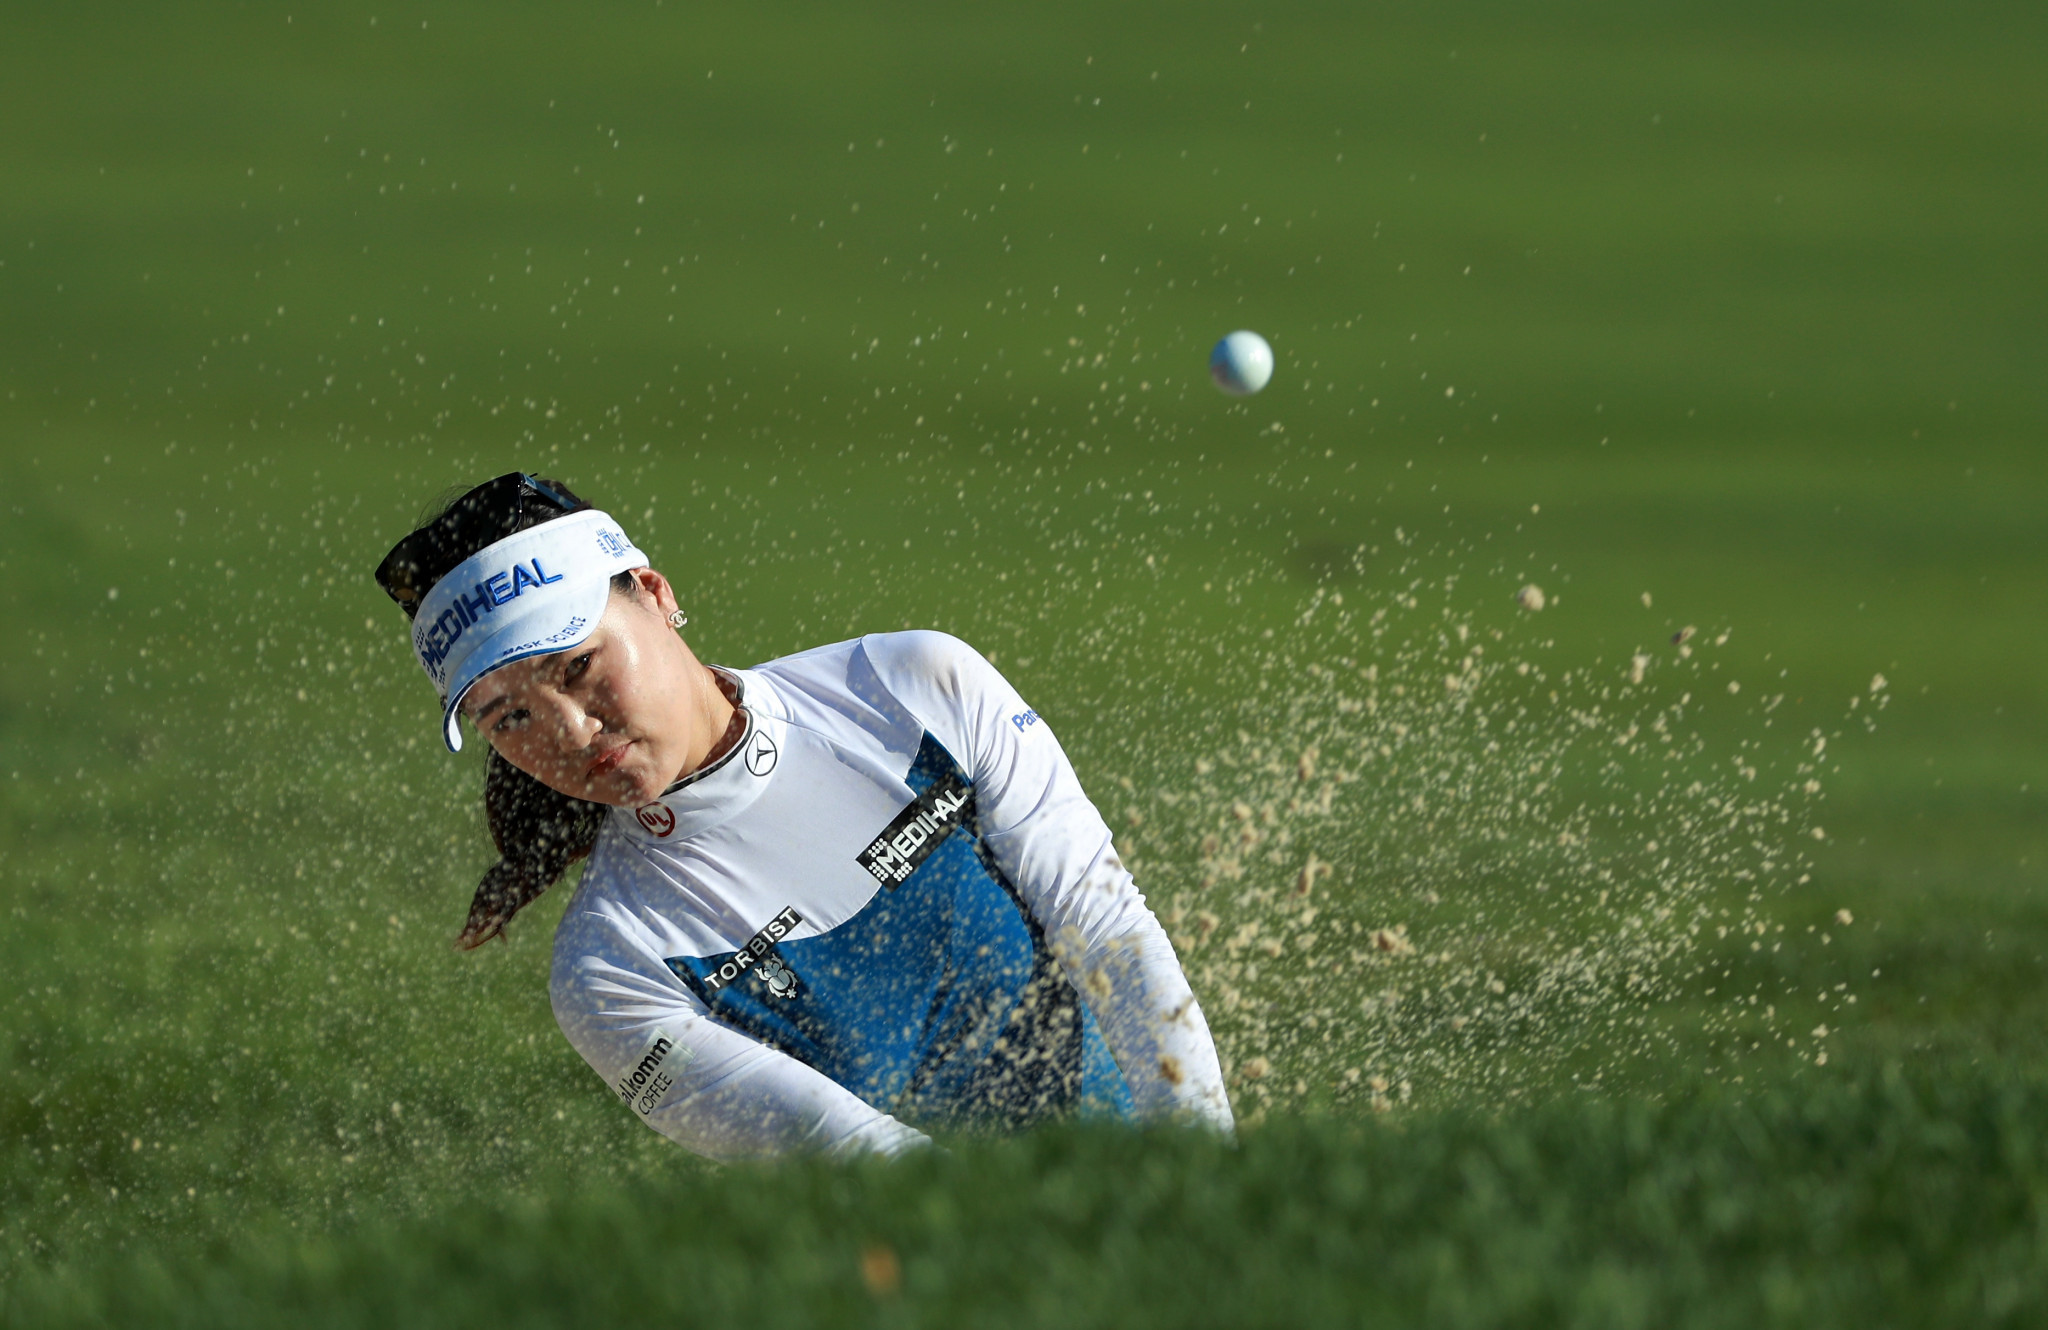 South Korea's Ryu So-yeon is tied for the lead on six-under par after day two of the Women's PGA Championship in Chicago ©Getty Images